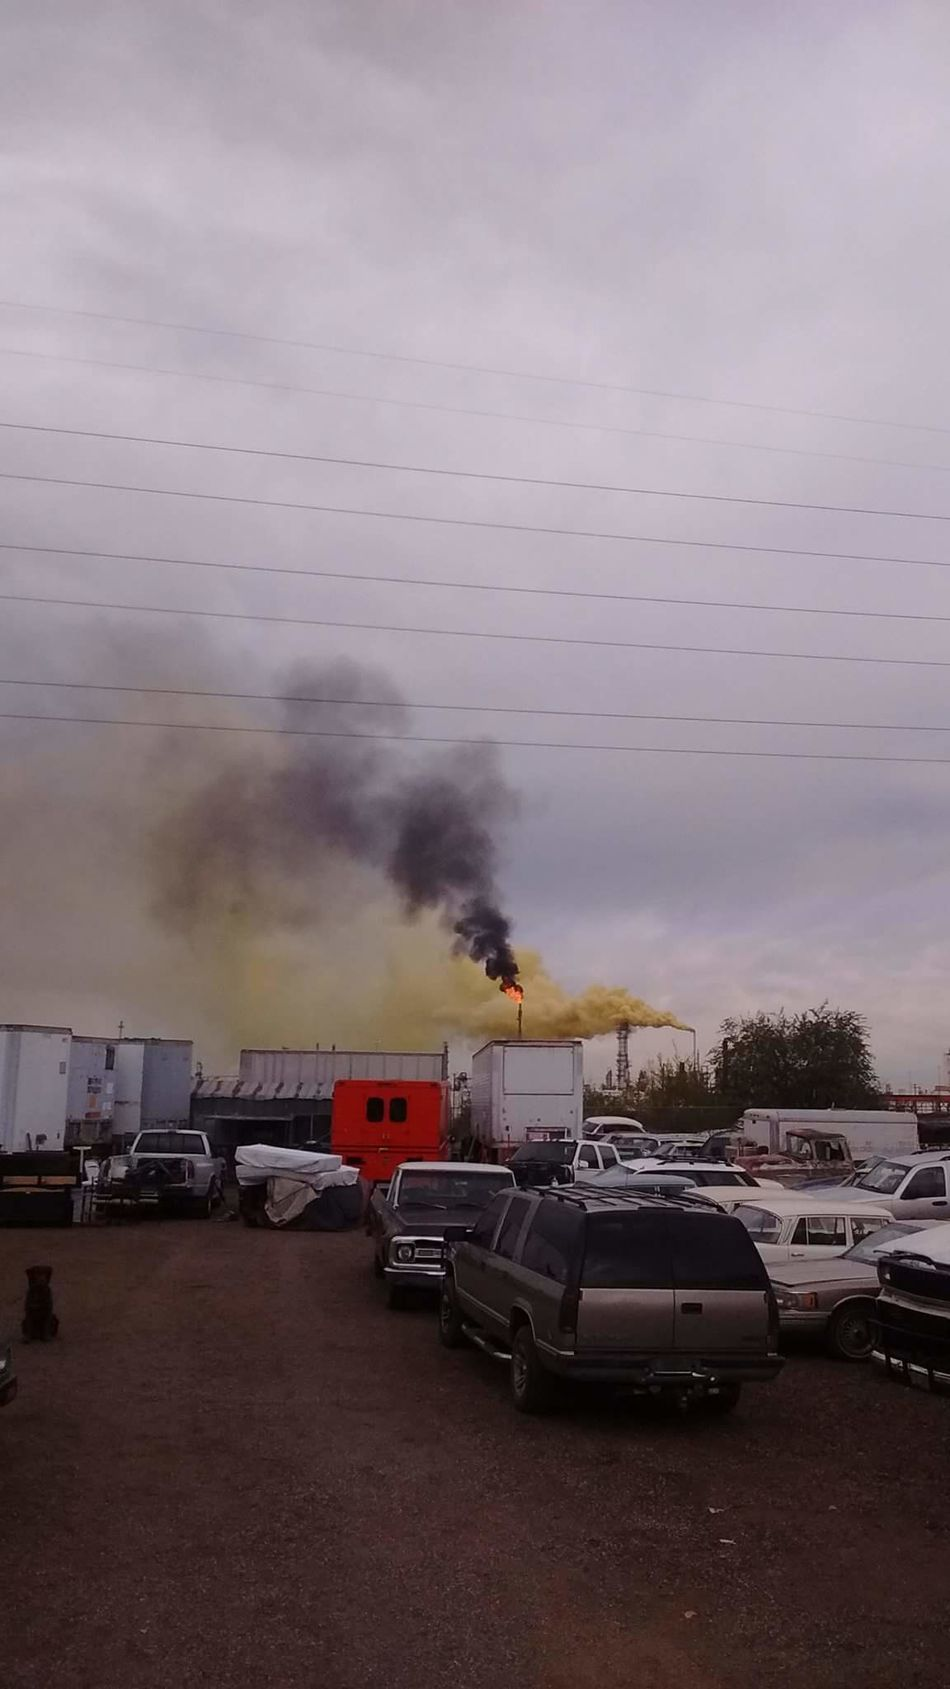 "2016 Suncore Refinery ""Yellow Plume"" Commerce City, Colorado ENVIRONMENTAL HAZARD as it was happening. 911 Cloud - Sky Cover-up Day Epa HAZMAT EMERGENCY Land Vehicle Mode Of Transport Nature Outdoors Service Animals Sky Smoke - Physical Structure Sulfer Transportation"